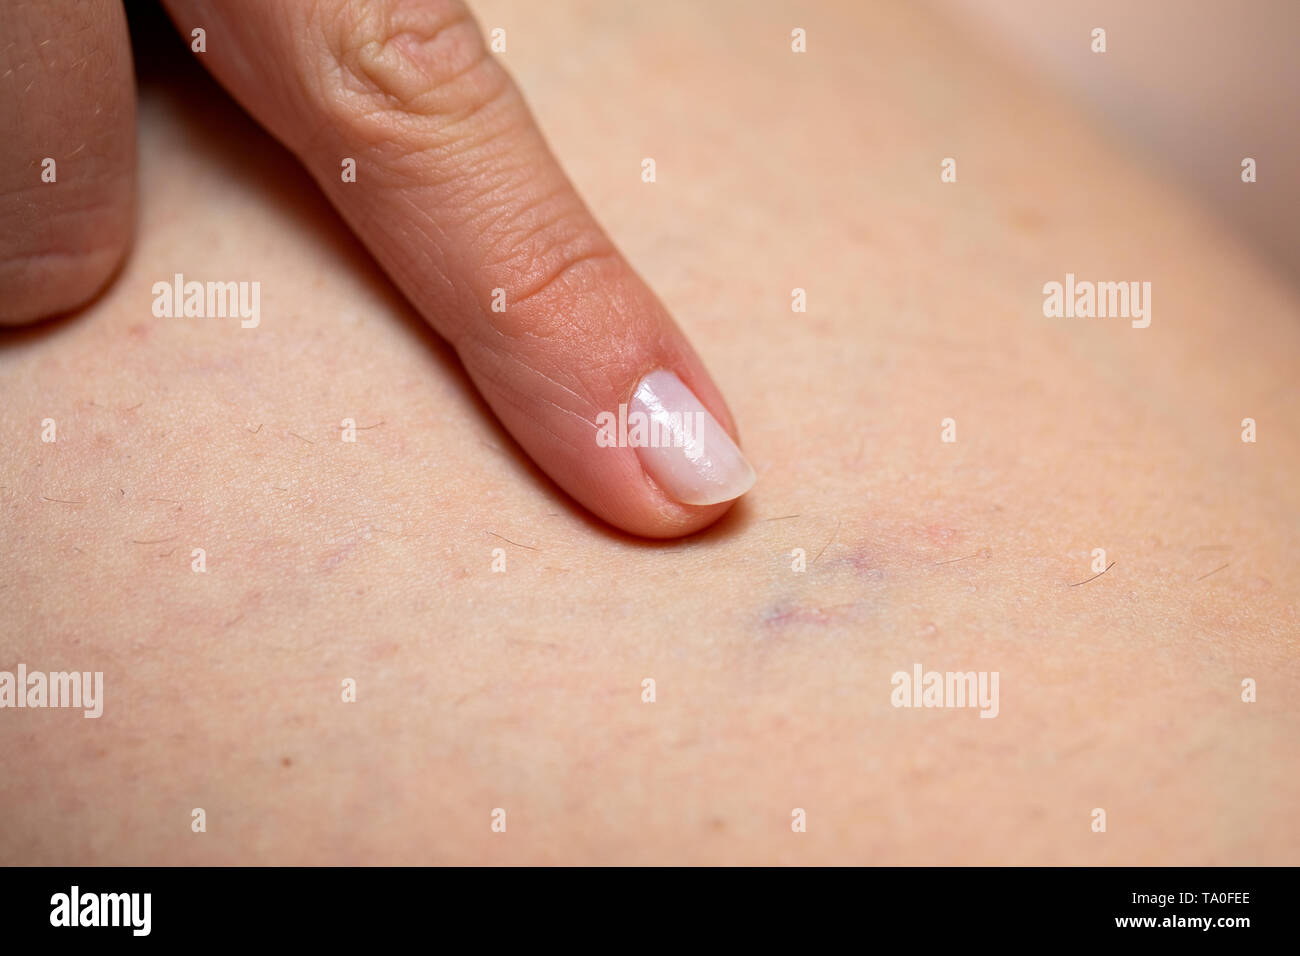 Close up picture of woman pointing at her painful varicose veins on the leg - Stock Image